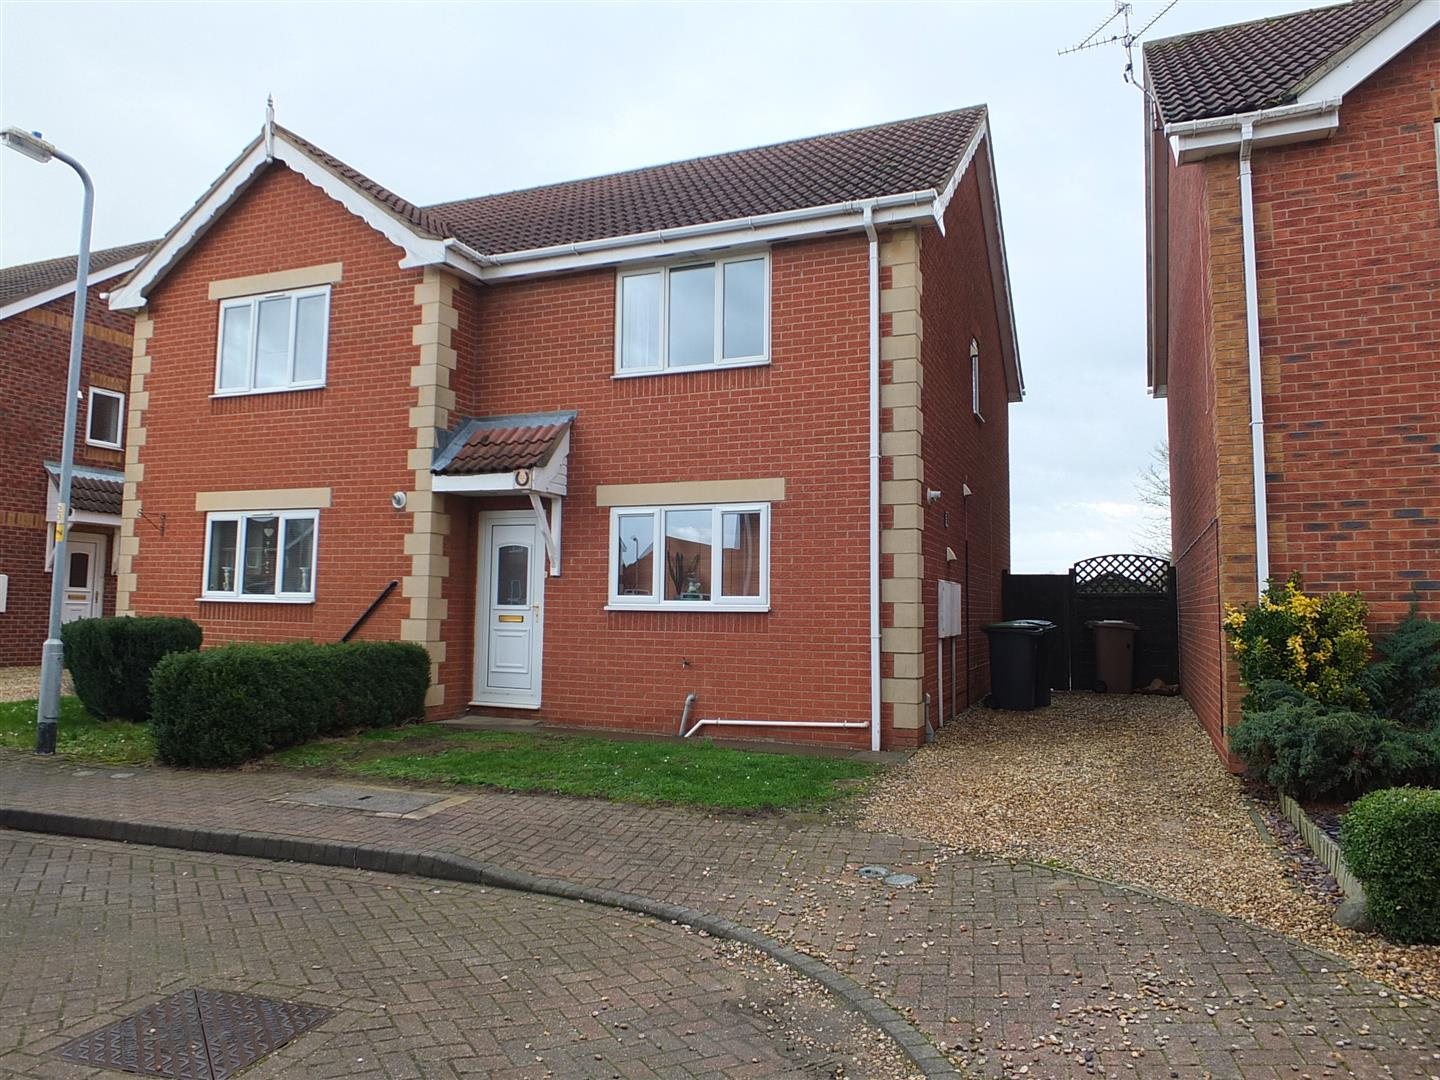 2 bedroom property in Ruskington, Sleaford